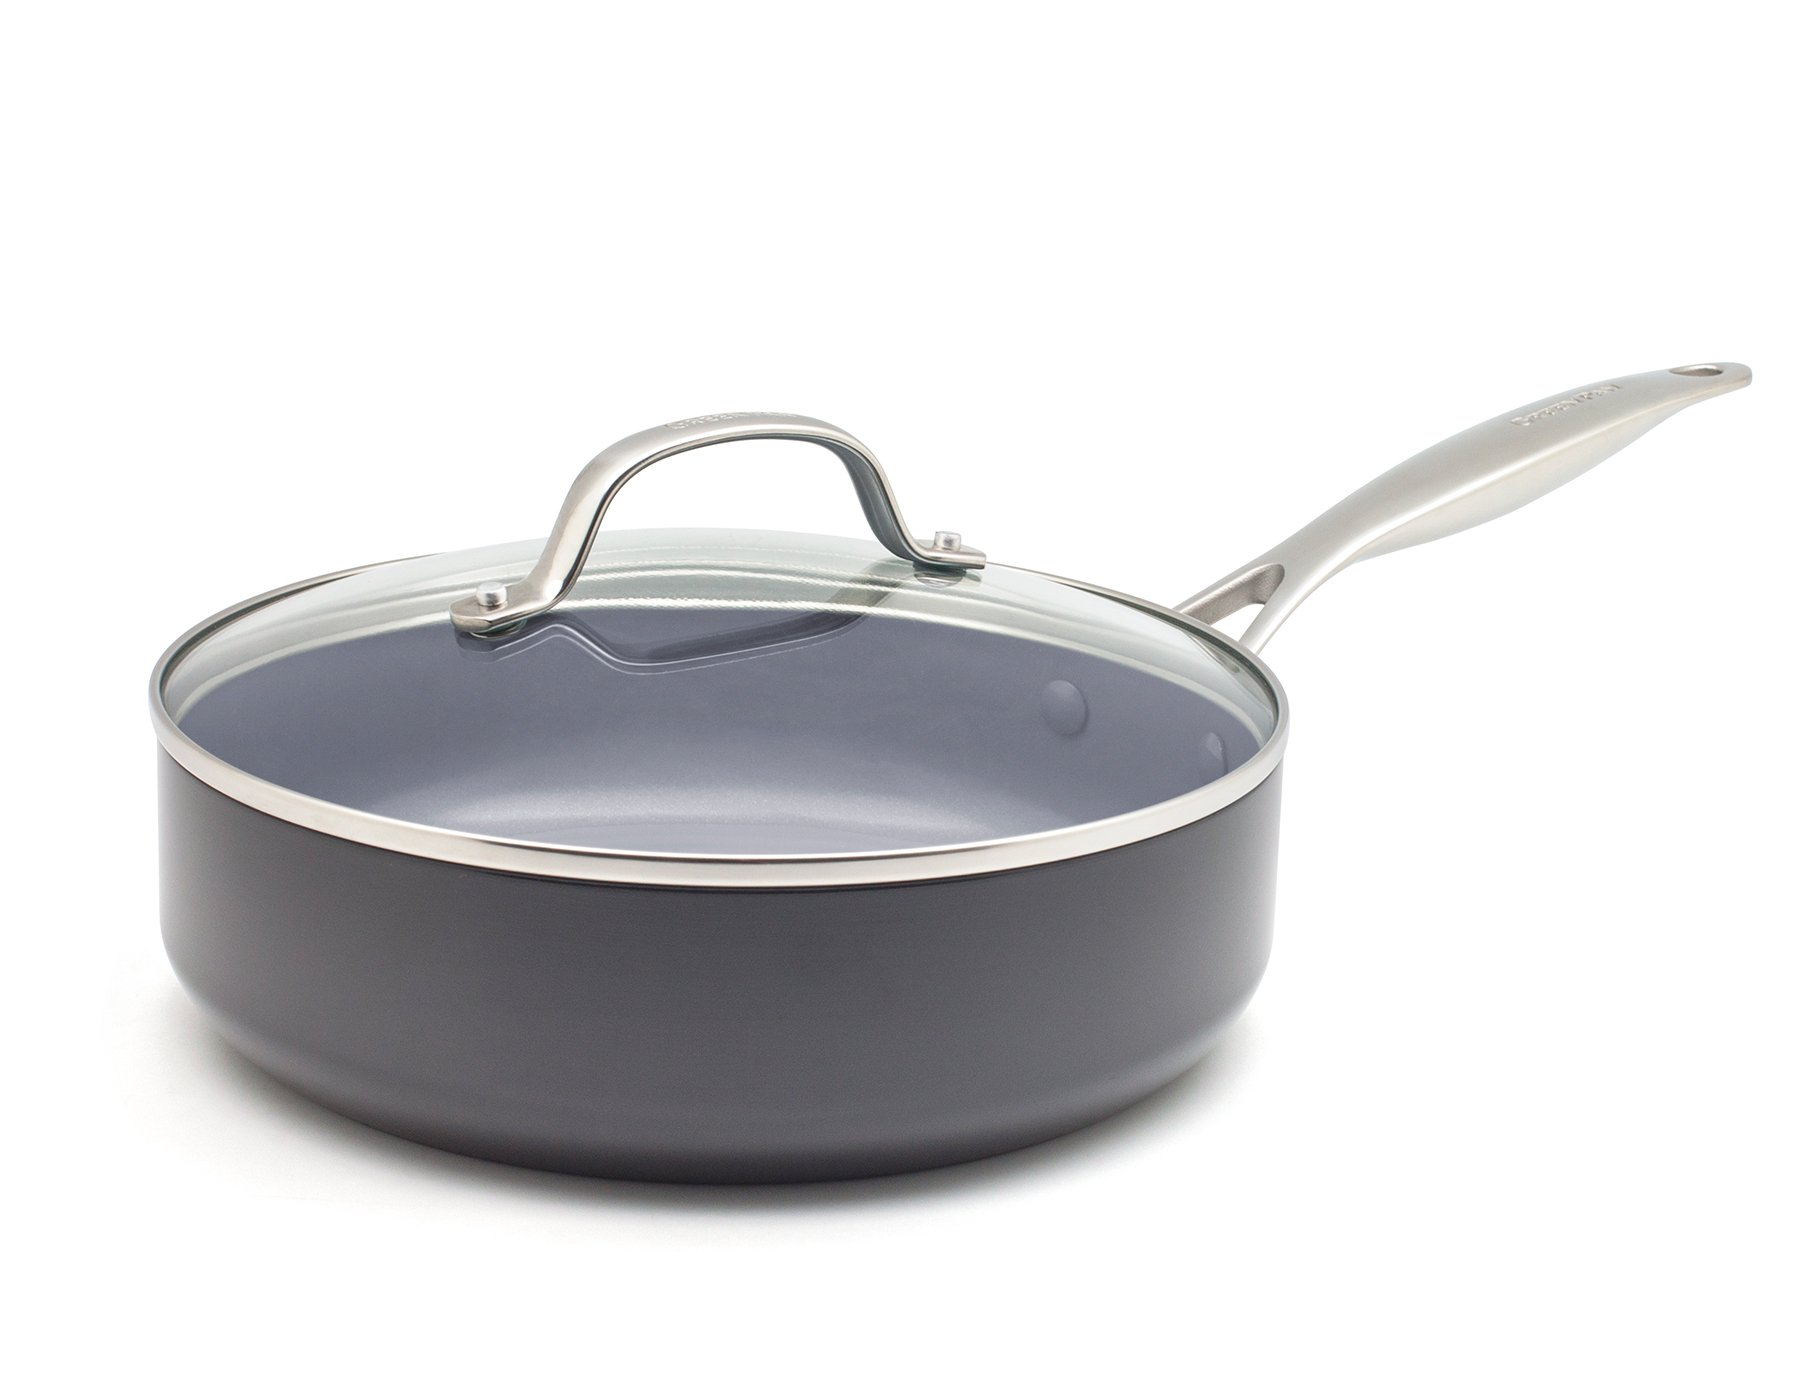 GreenPan CC000671-001 Valencia Pro Hard Anodized 100% Toxin-Free Healthy Ceramic Nonstick Metal Utensil/Dishwasher/Oven Safe Covered Sauté Pan, 4.5-Quart, Grey by GreenPan